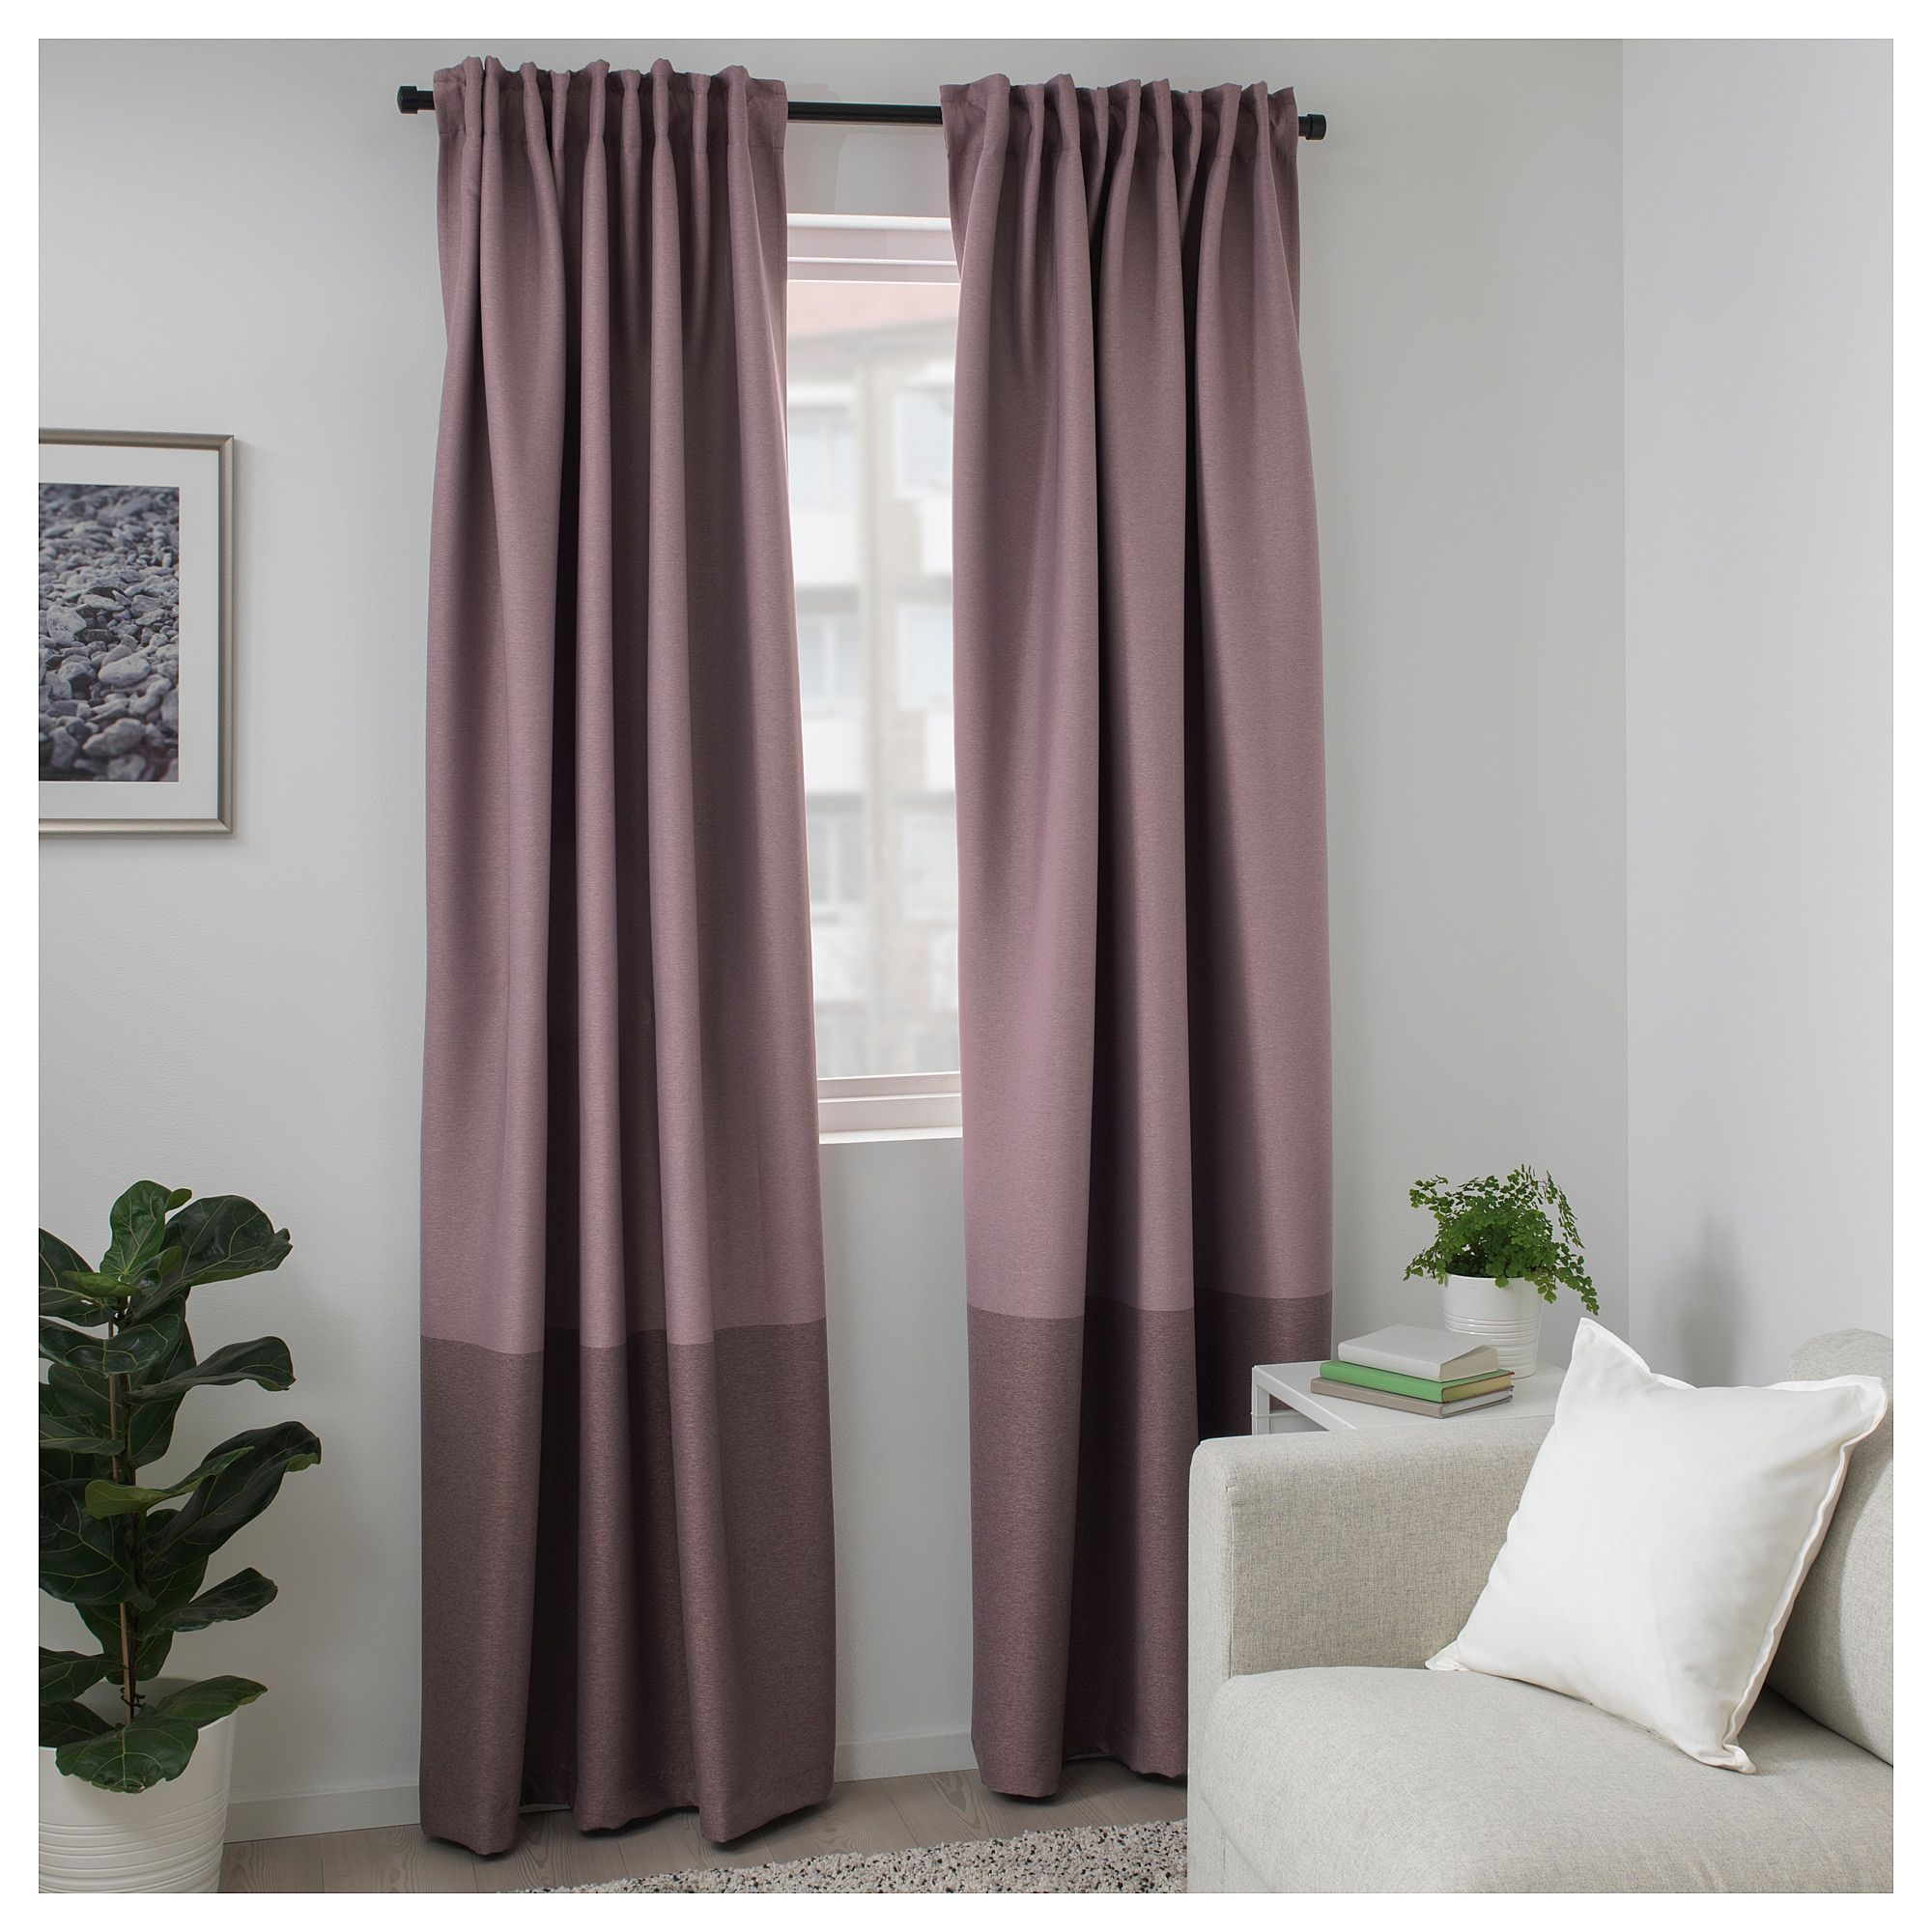 Ikea Marjun Room Darkening Curtains 1 Pair Lilac Products In 2019 Room Darkening Mauve - Ikea Vorhang Marjun